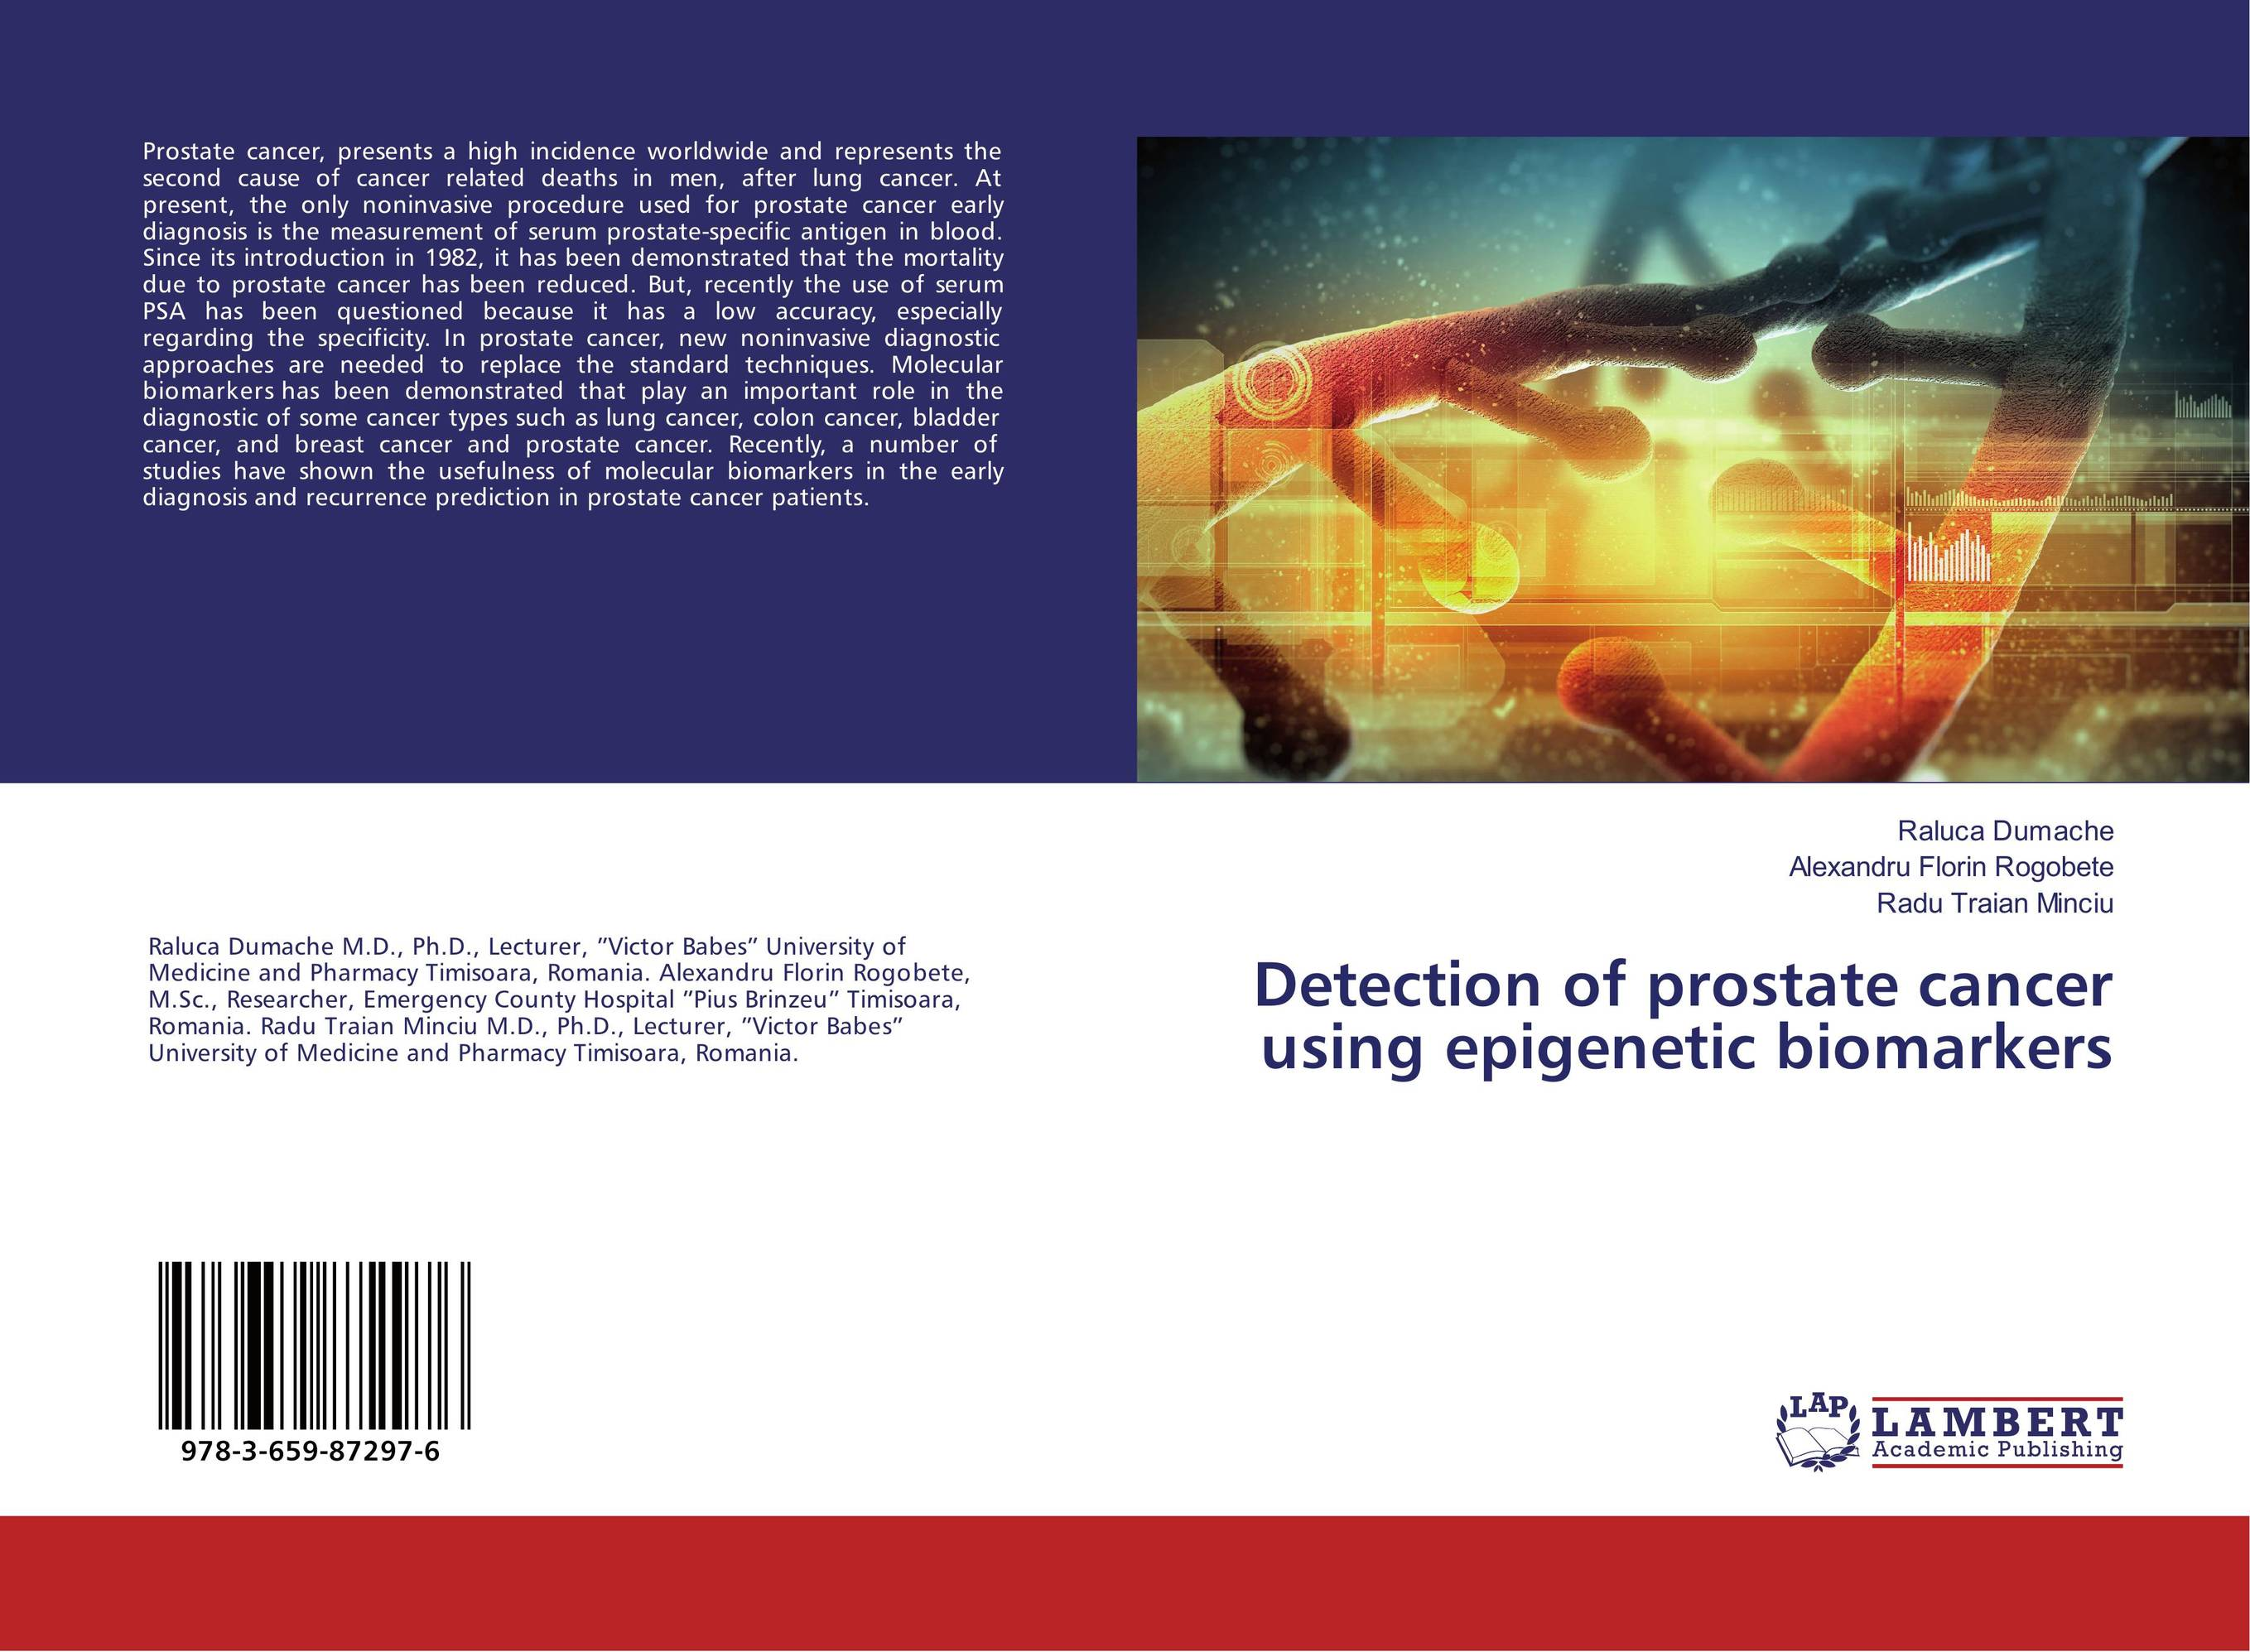 Detection of prostate cancer using epigenetic biomarkers viruses cell transformation and cancer 5